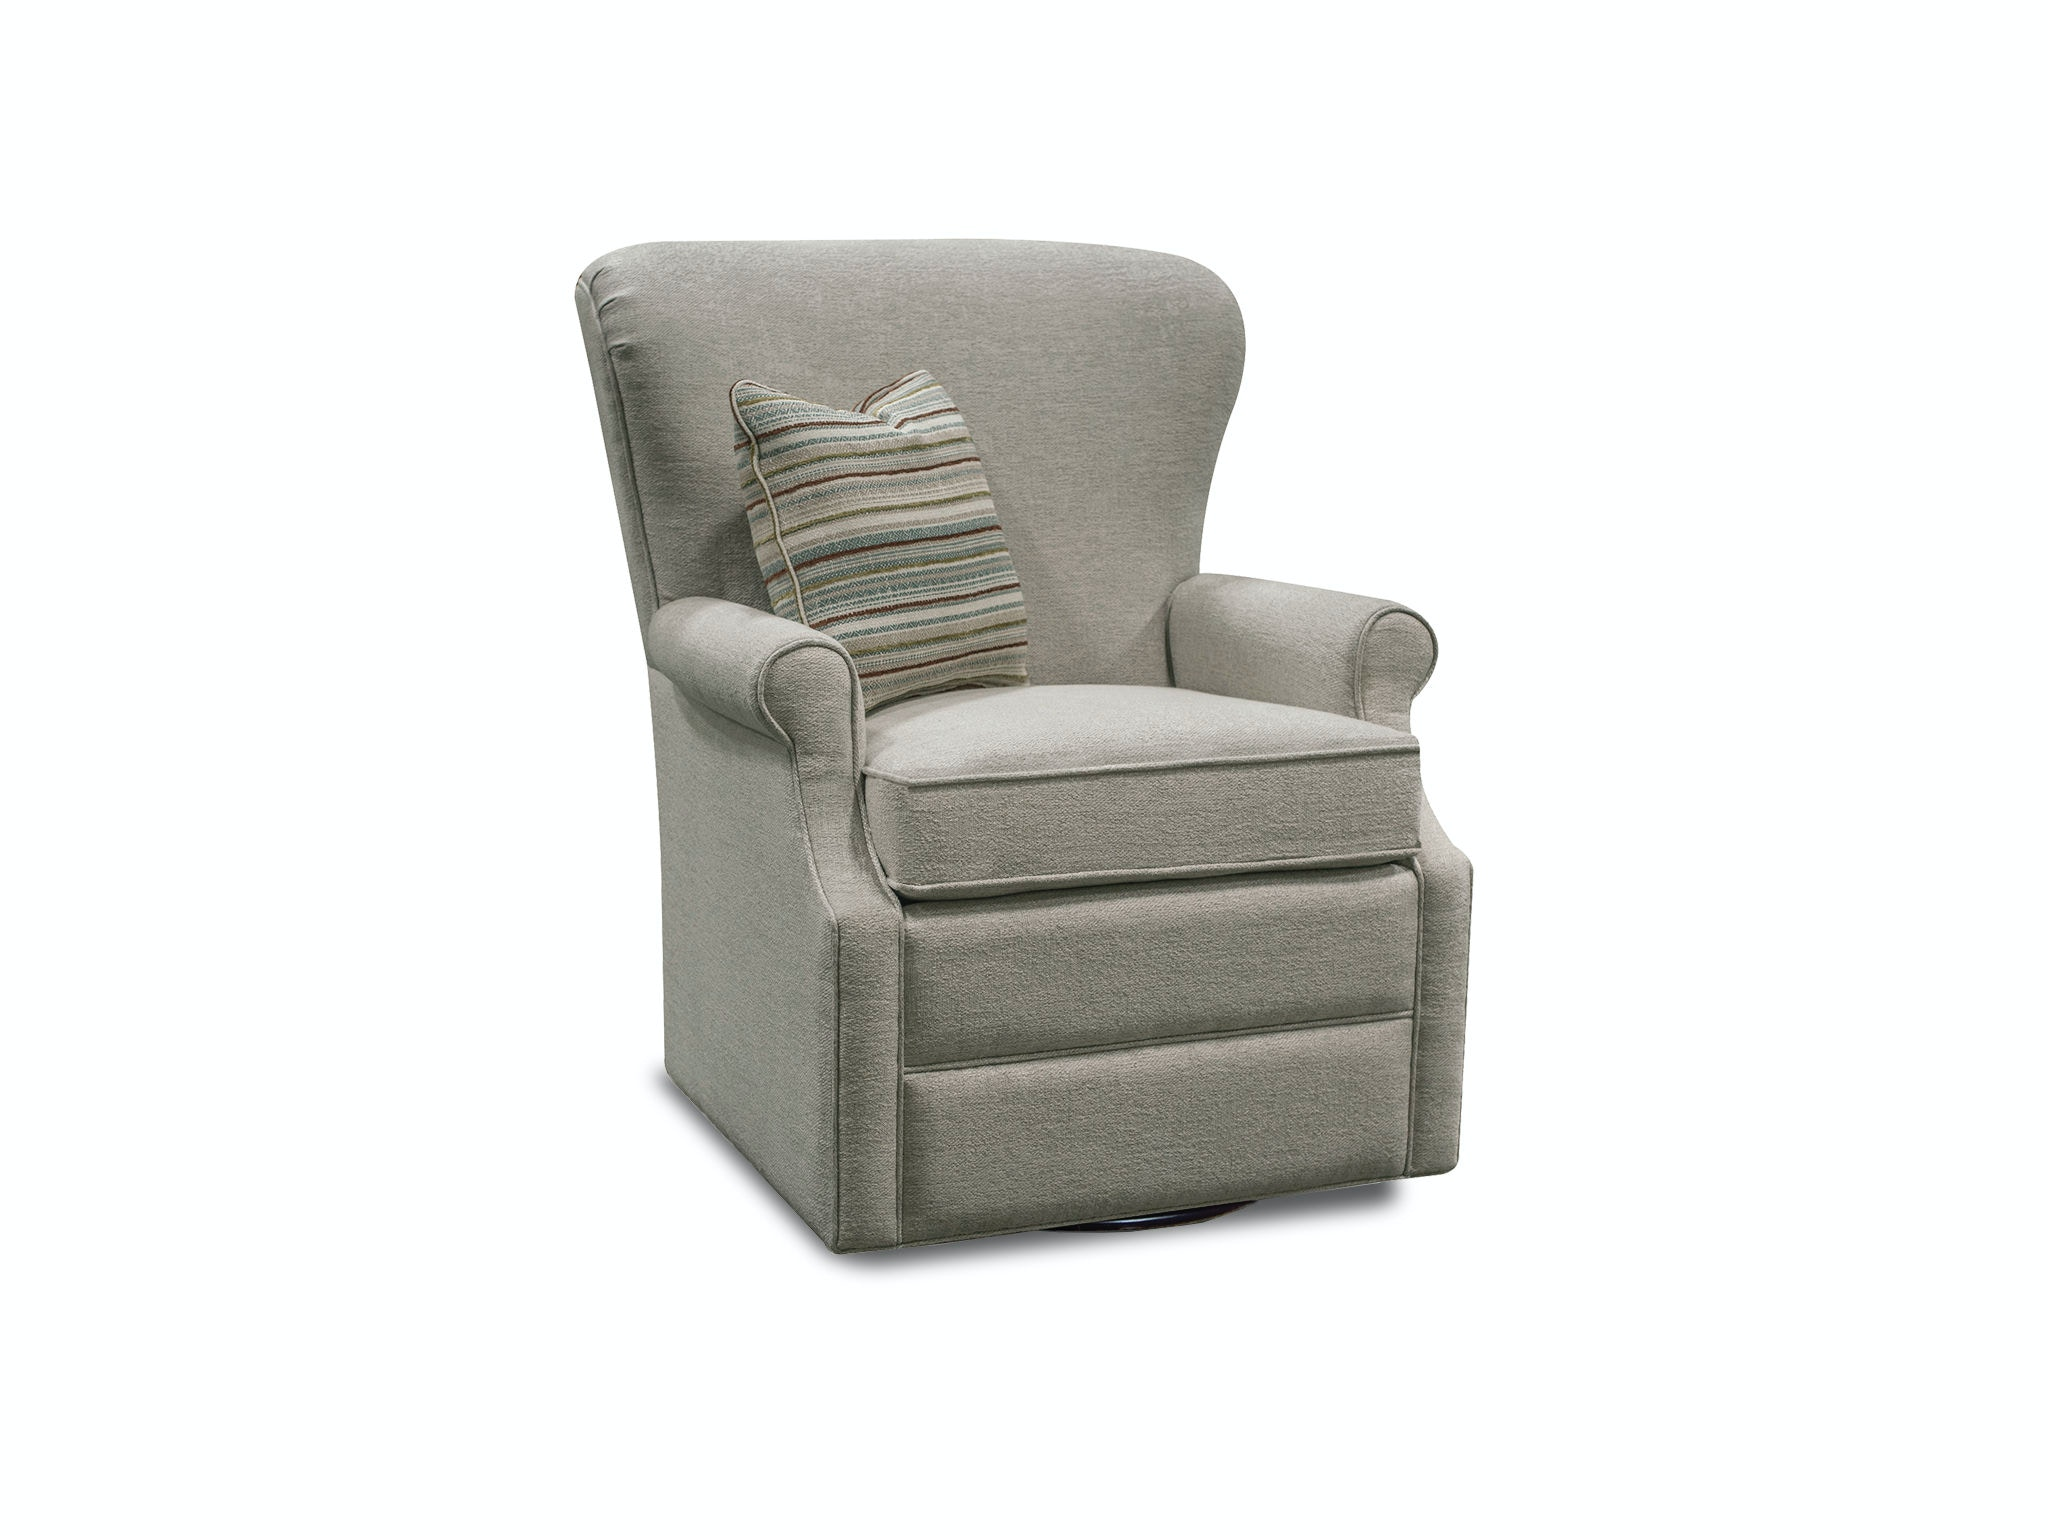 Exceptionnel England Natalie Swivel Chair 1300 69